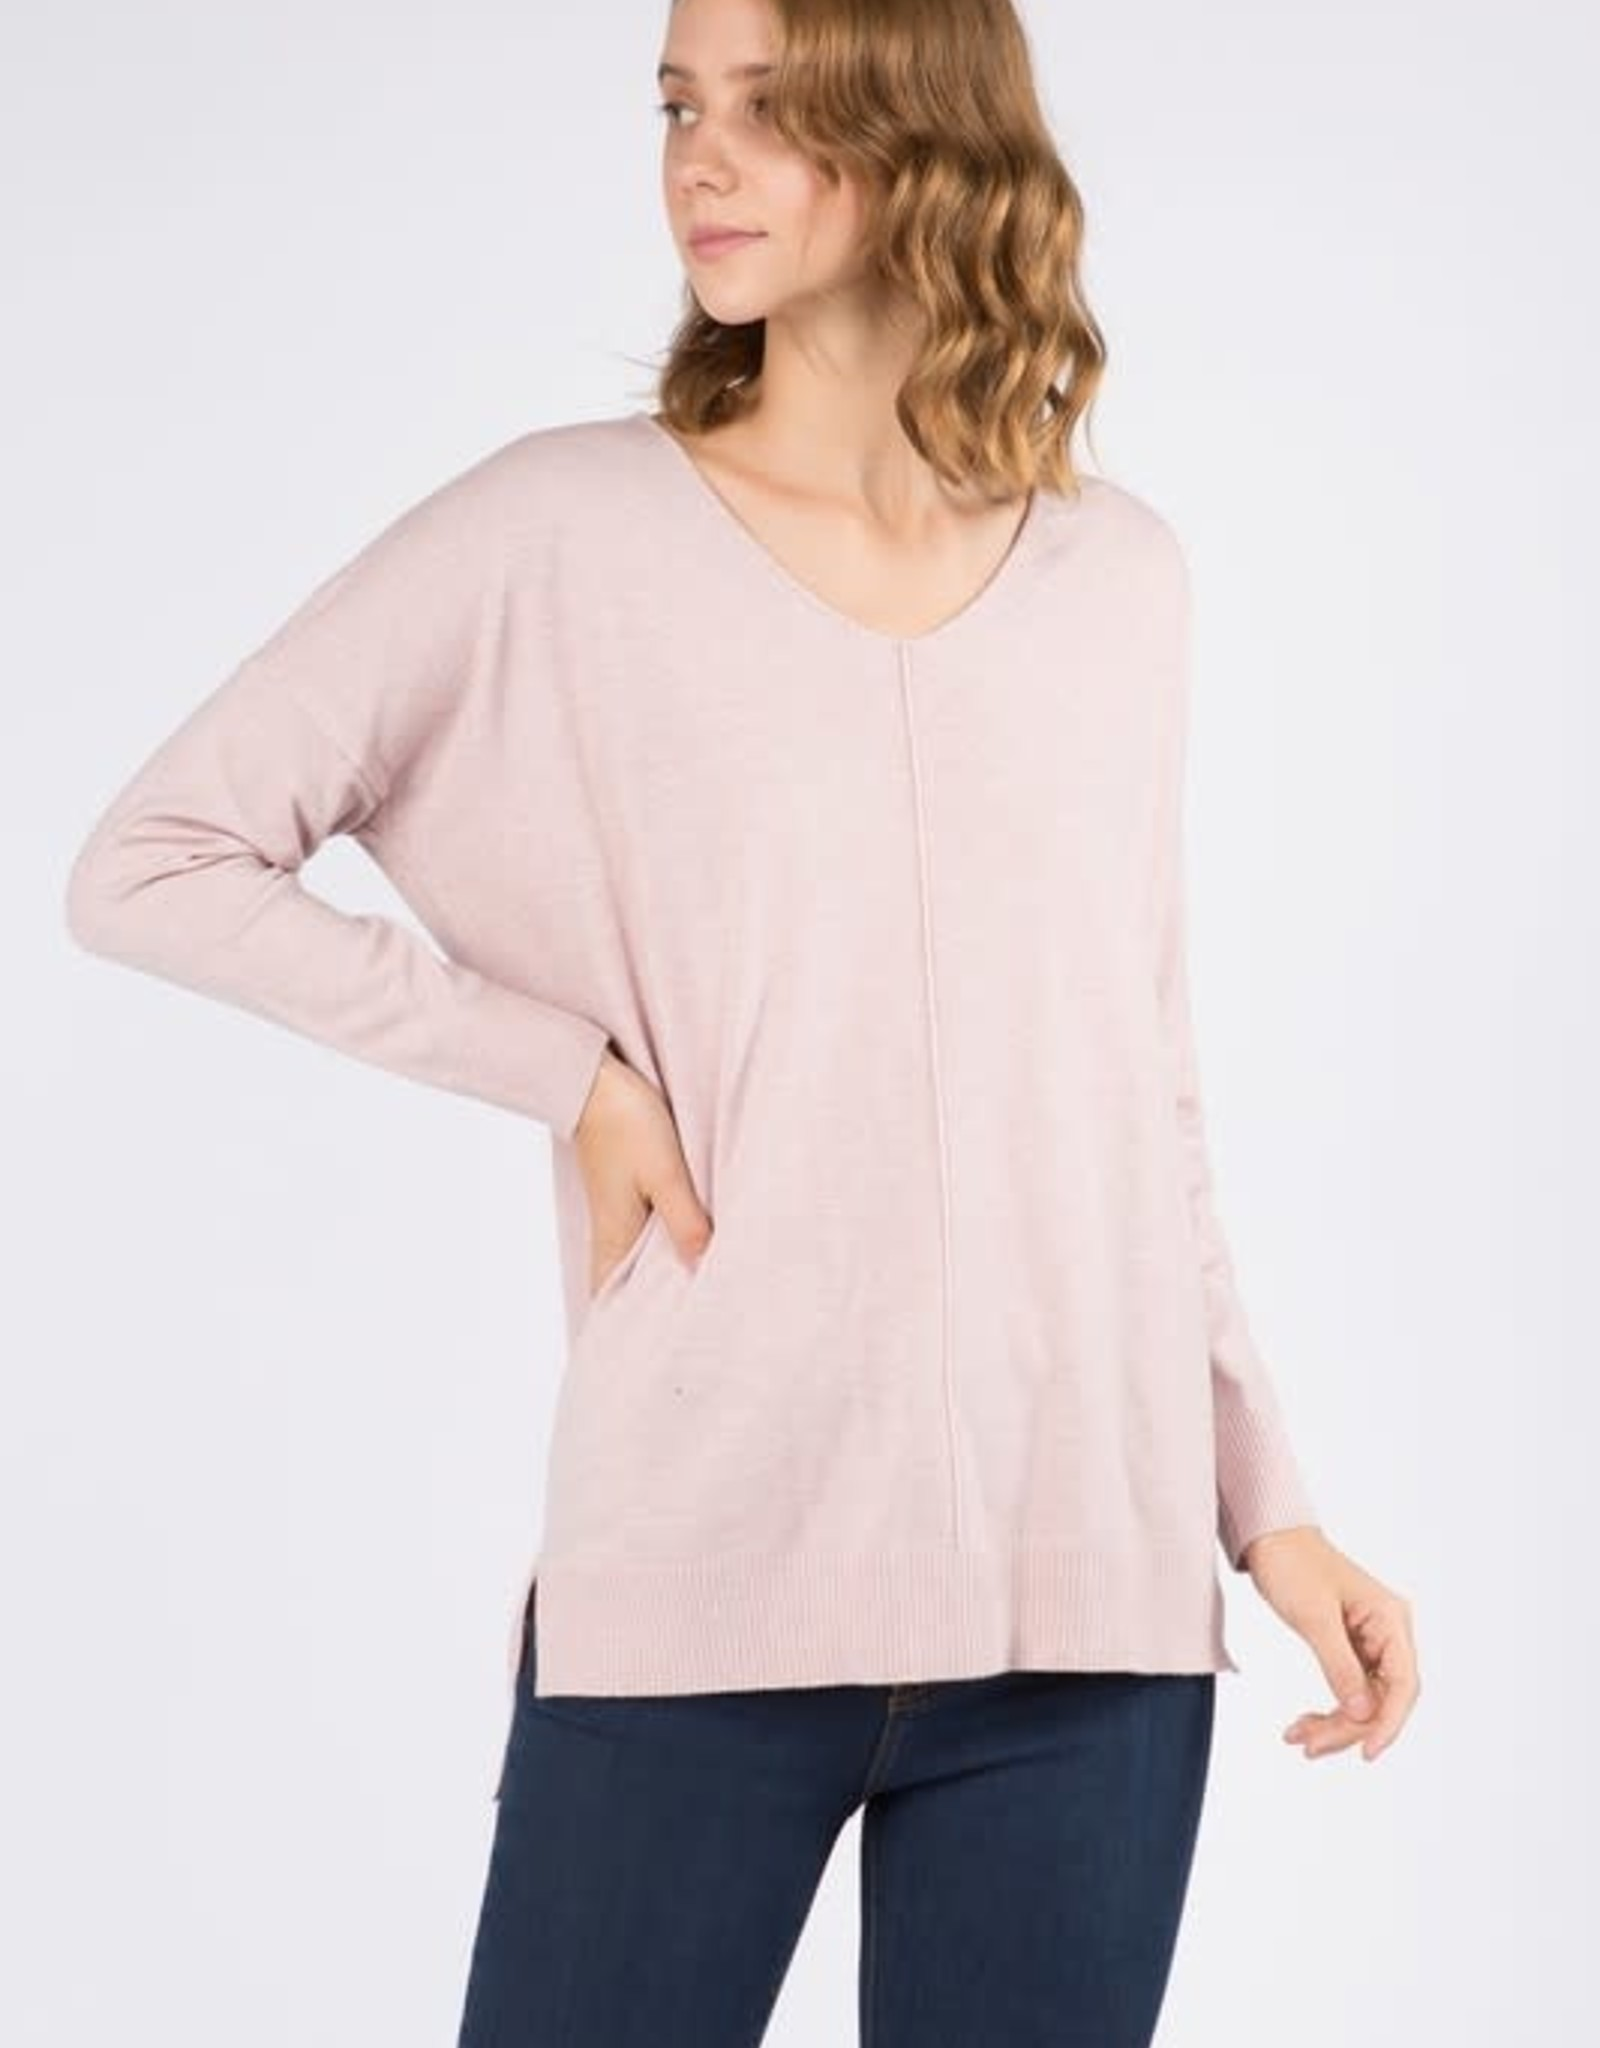 Dreamers LS V Neck W/ Center Seam Detail- Heather Peony